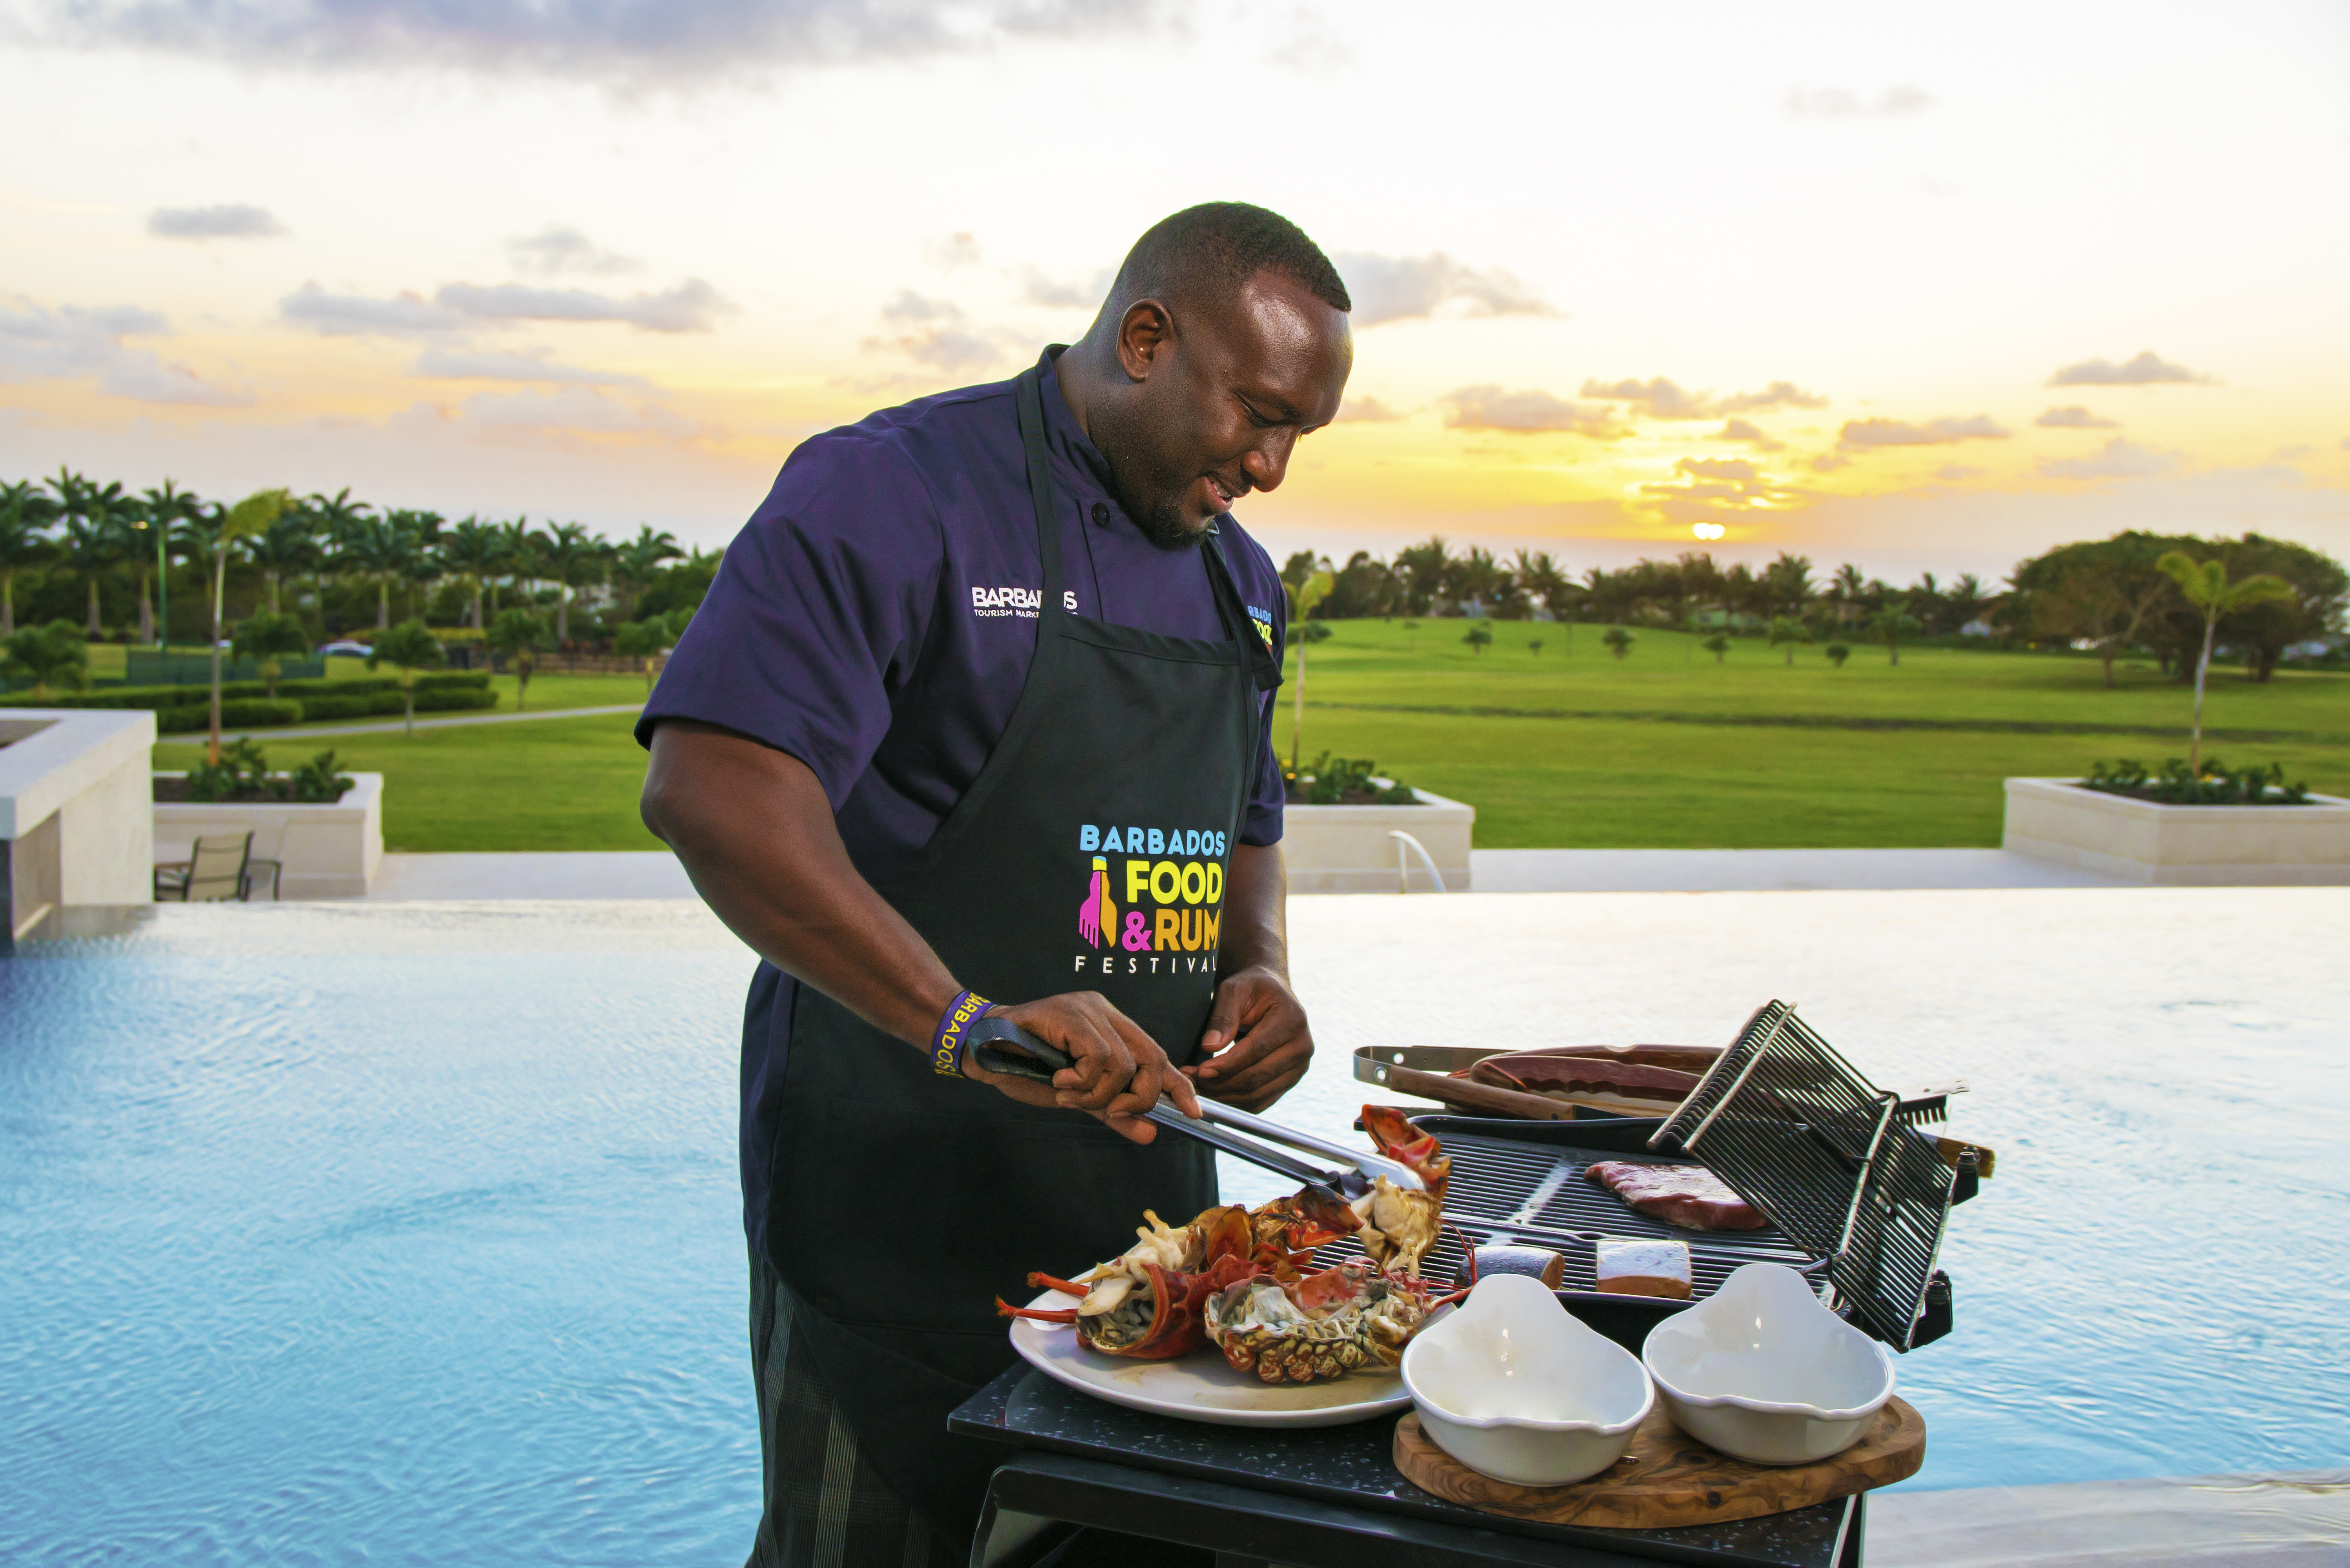 Barbados Guy on Grill